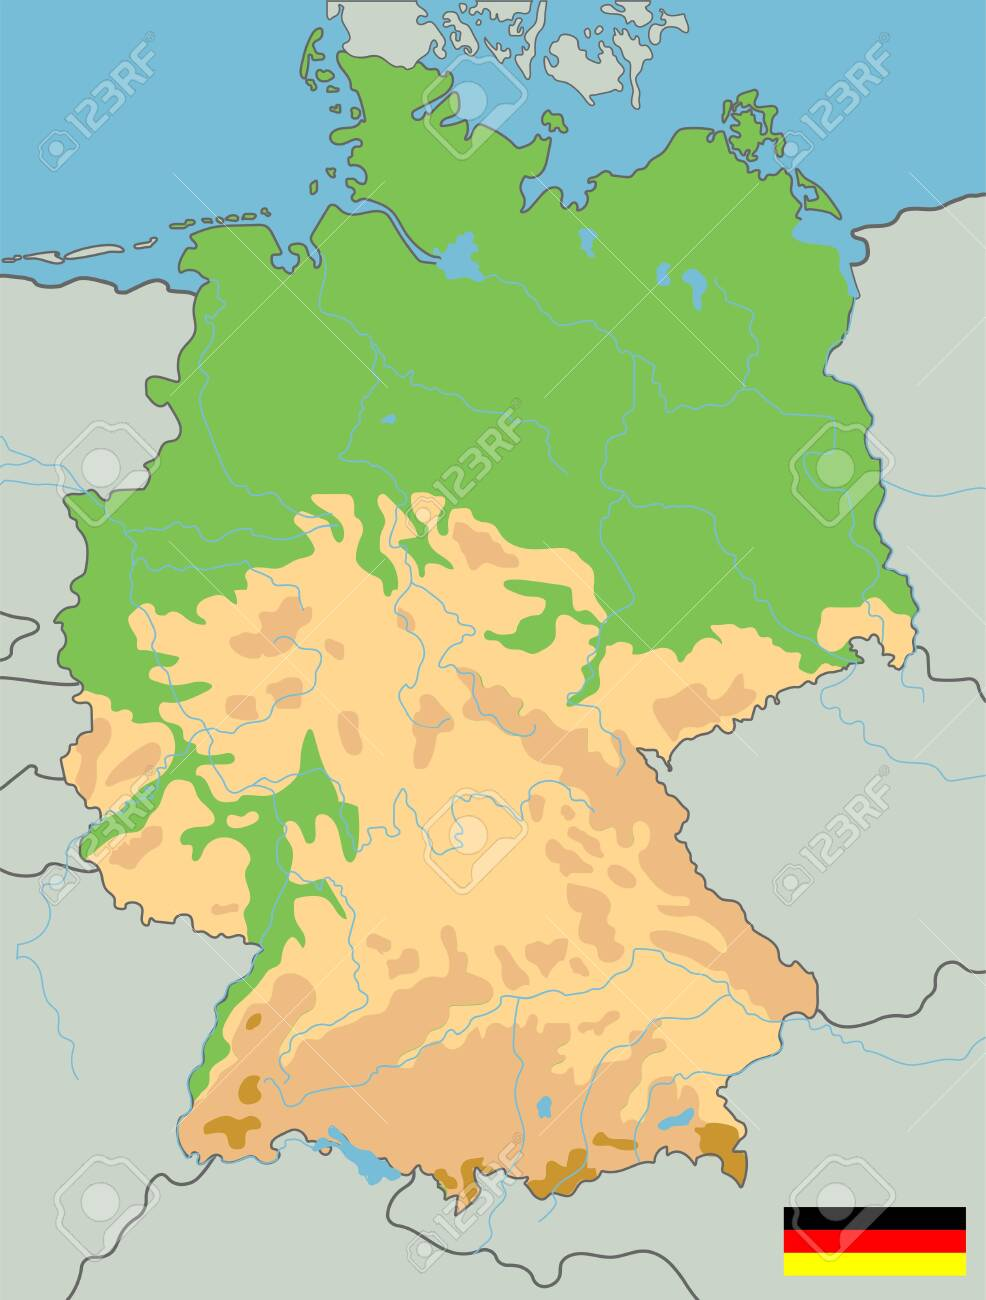 Map Of Germany Mountains.Large Detailed Topographic Map Of Germany With Contours Lakes